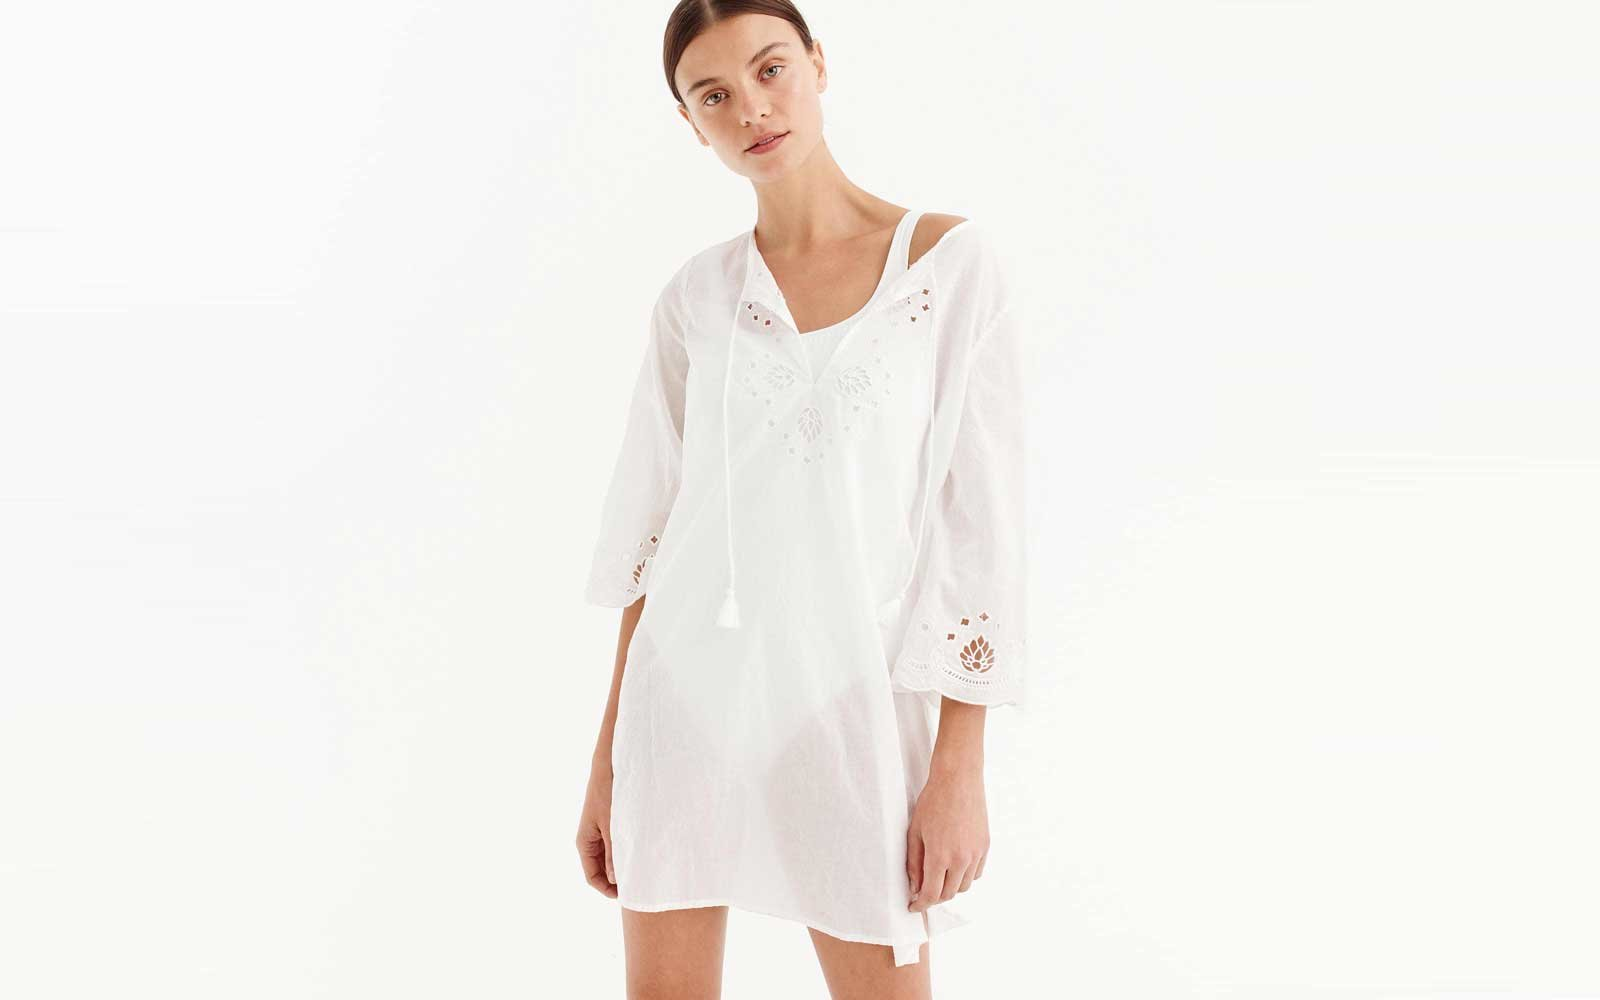 J.Crew cotton beach cover-up